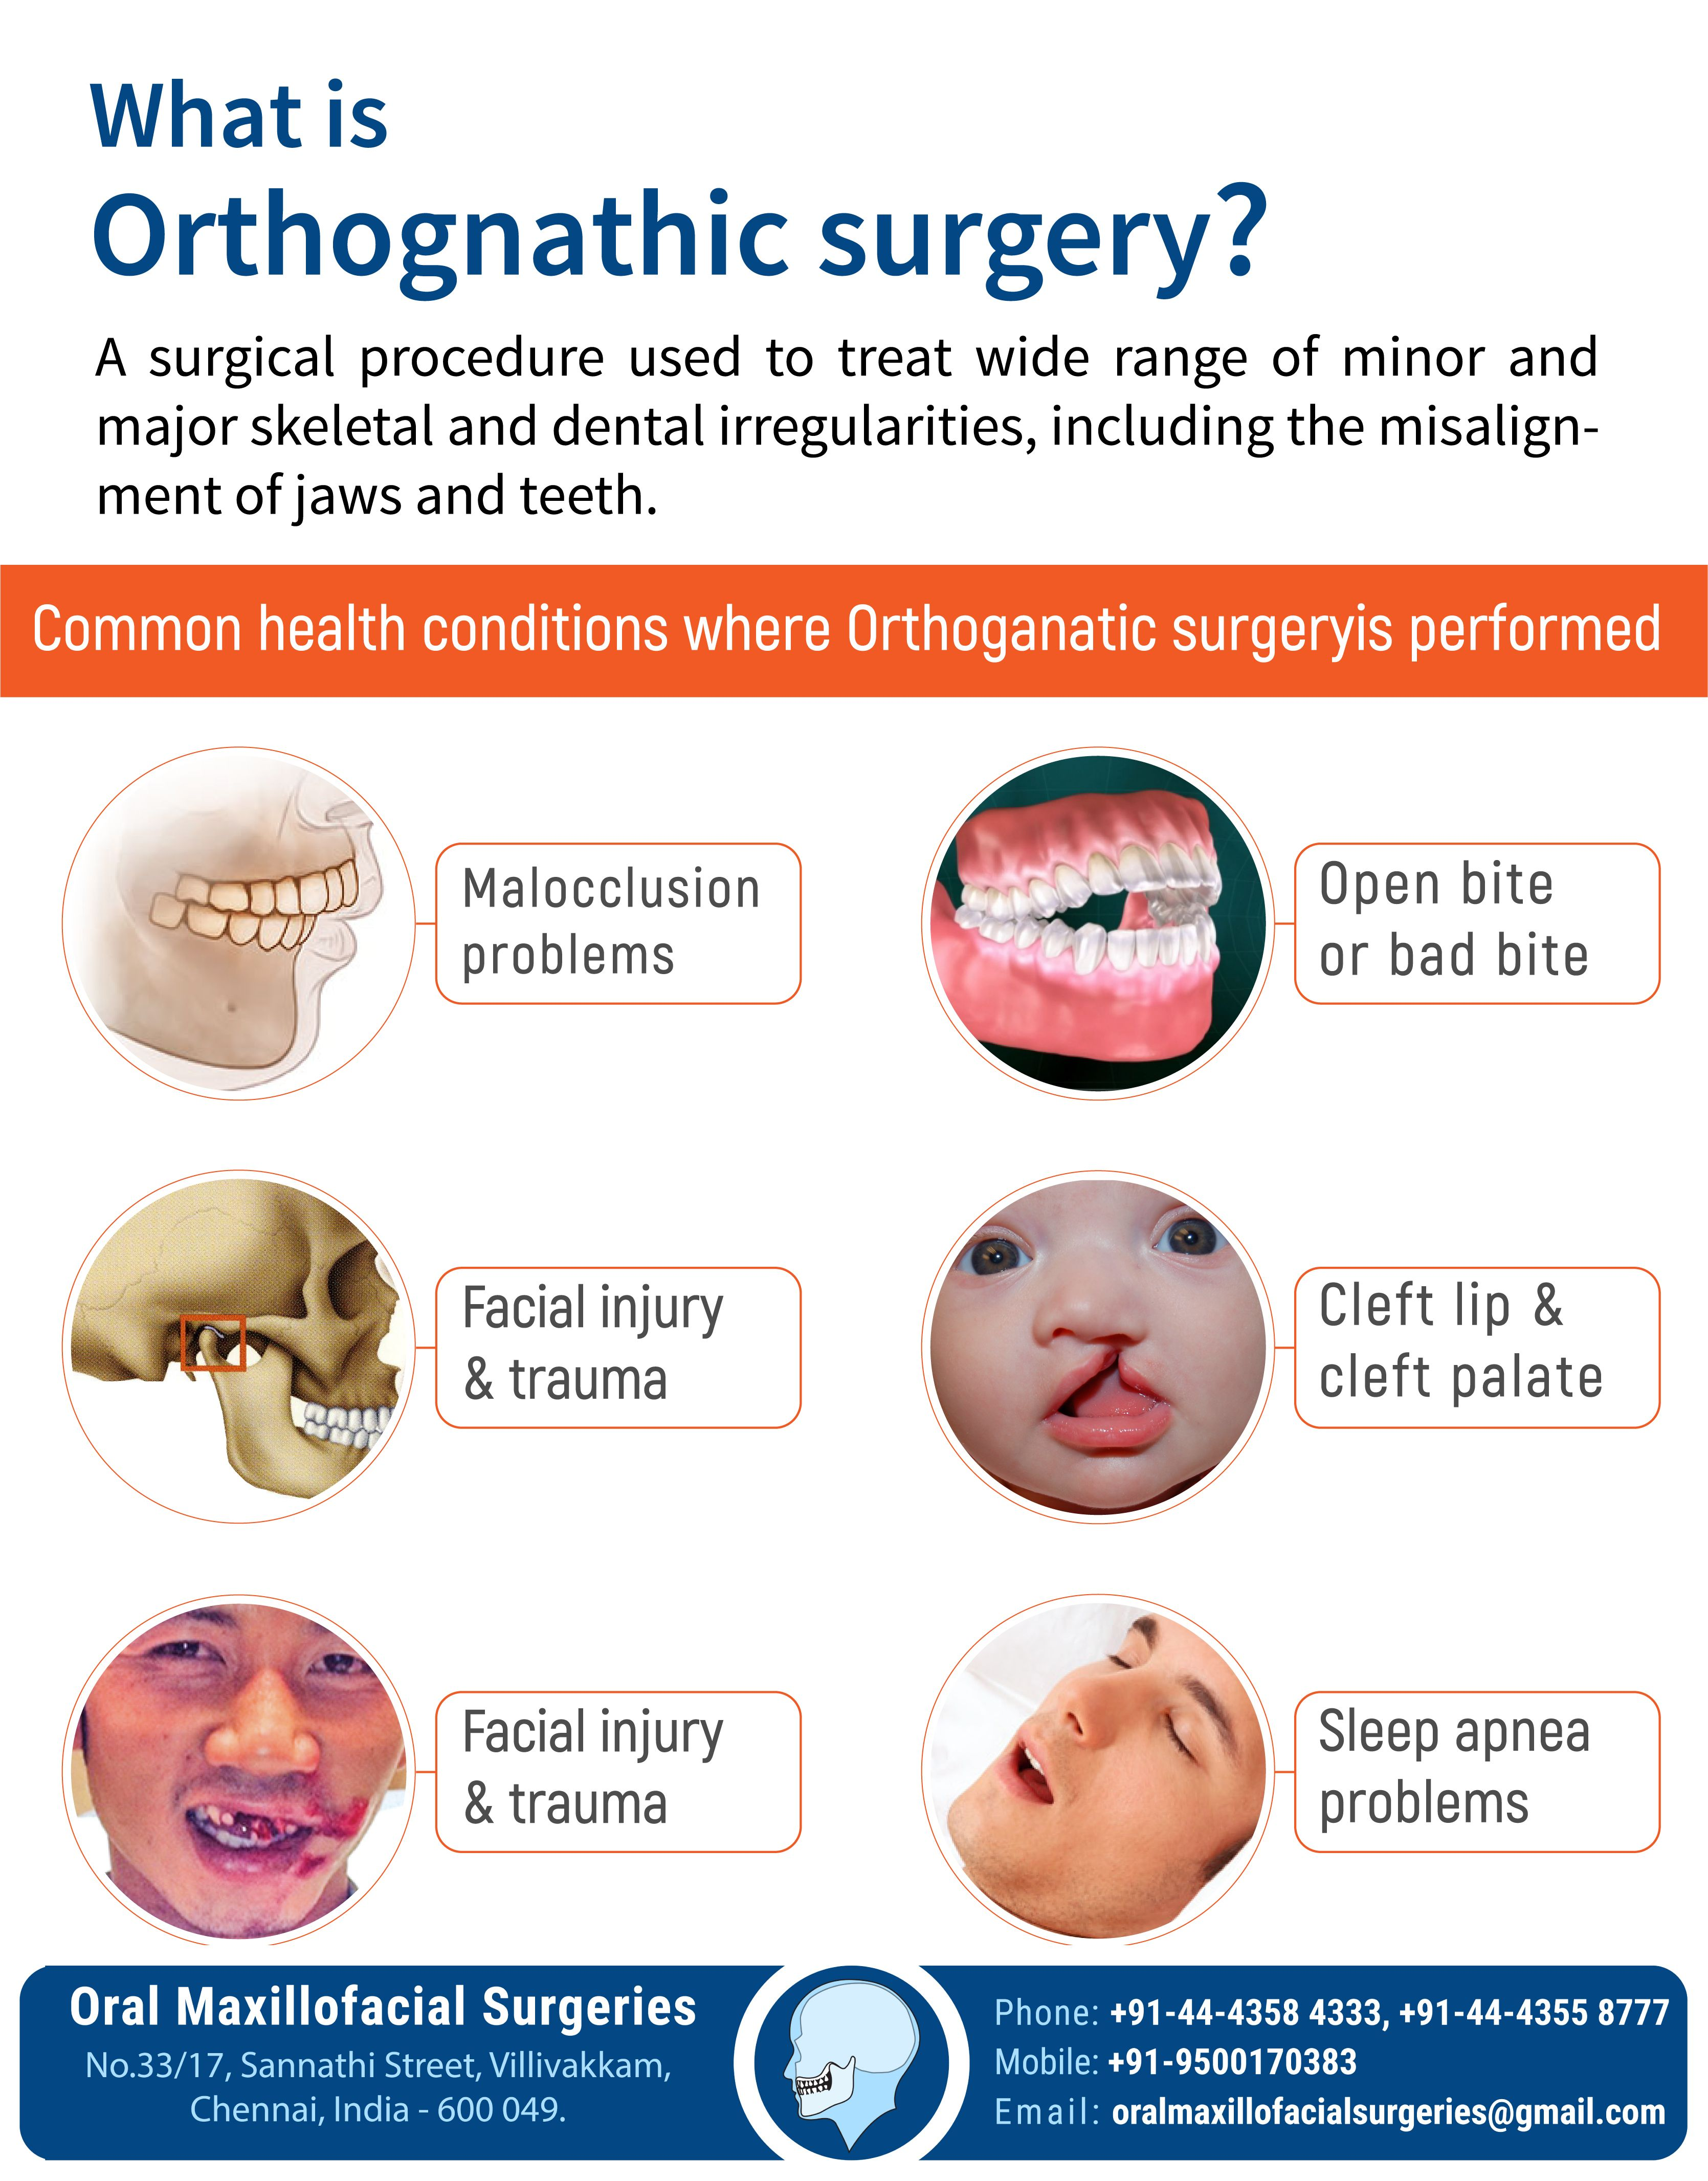 What is Orthognathic Surgery? A Surgical procedure used to treat wide range of minor and major skele